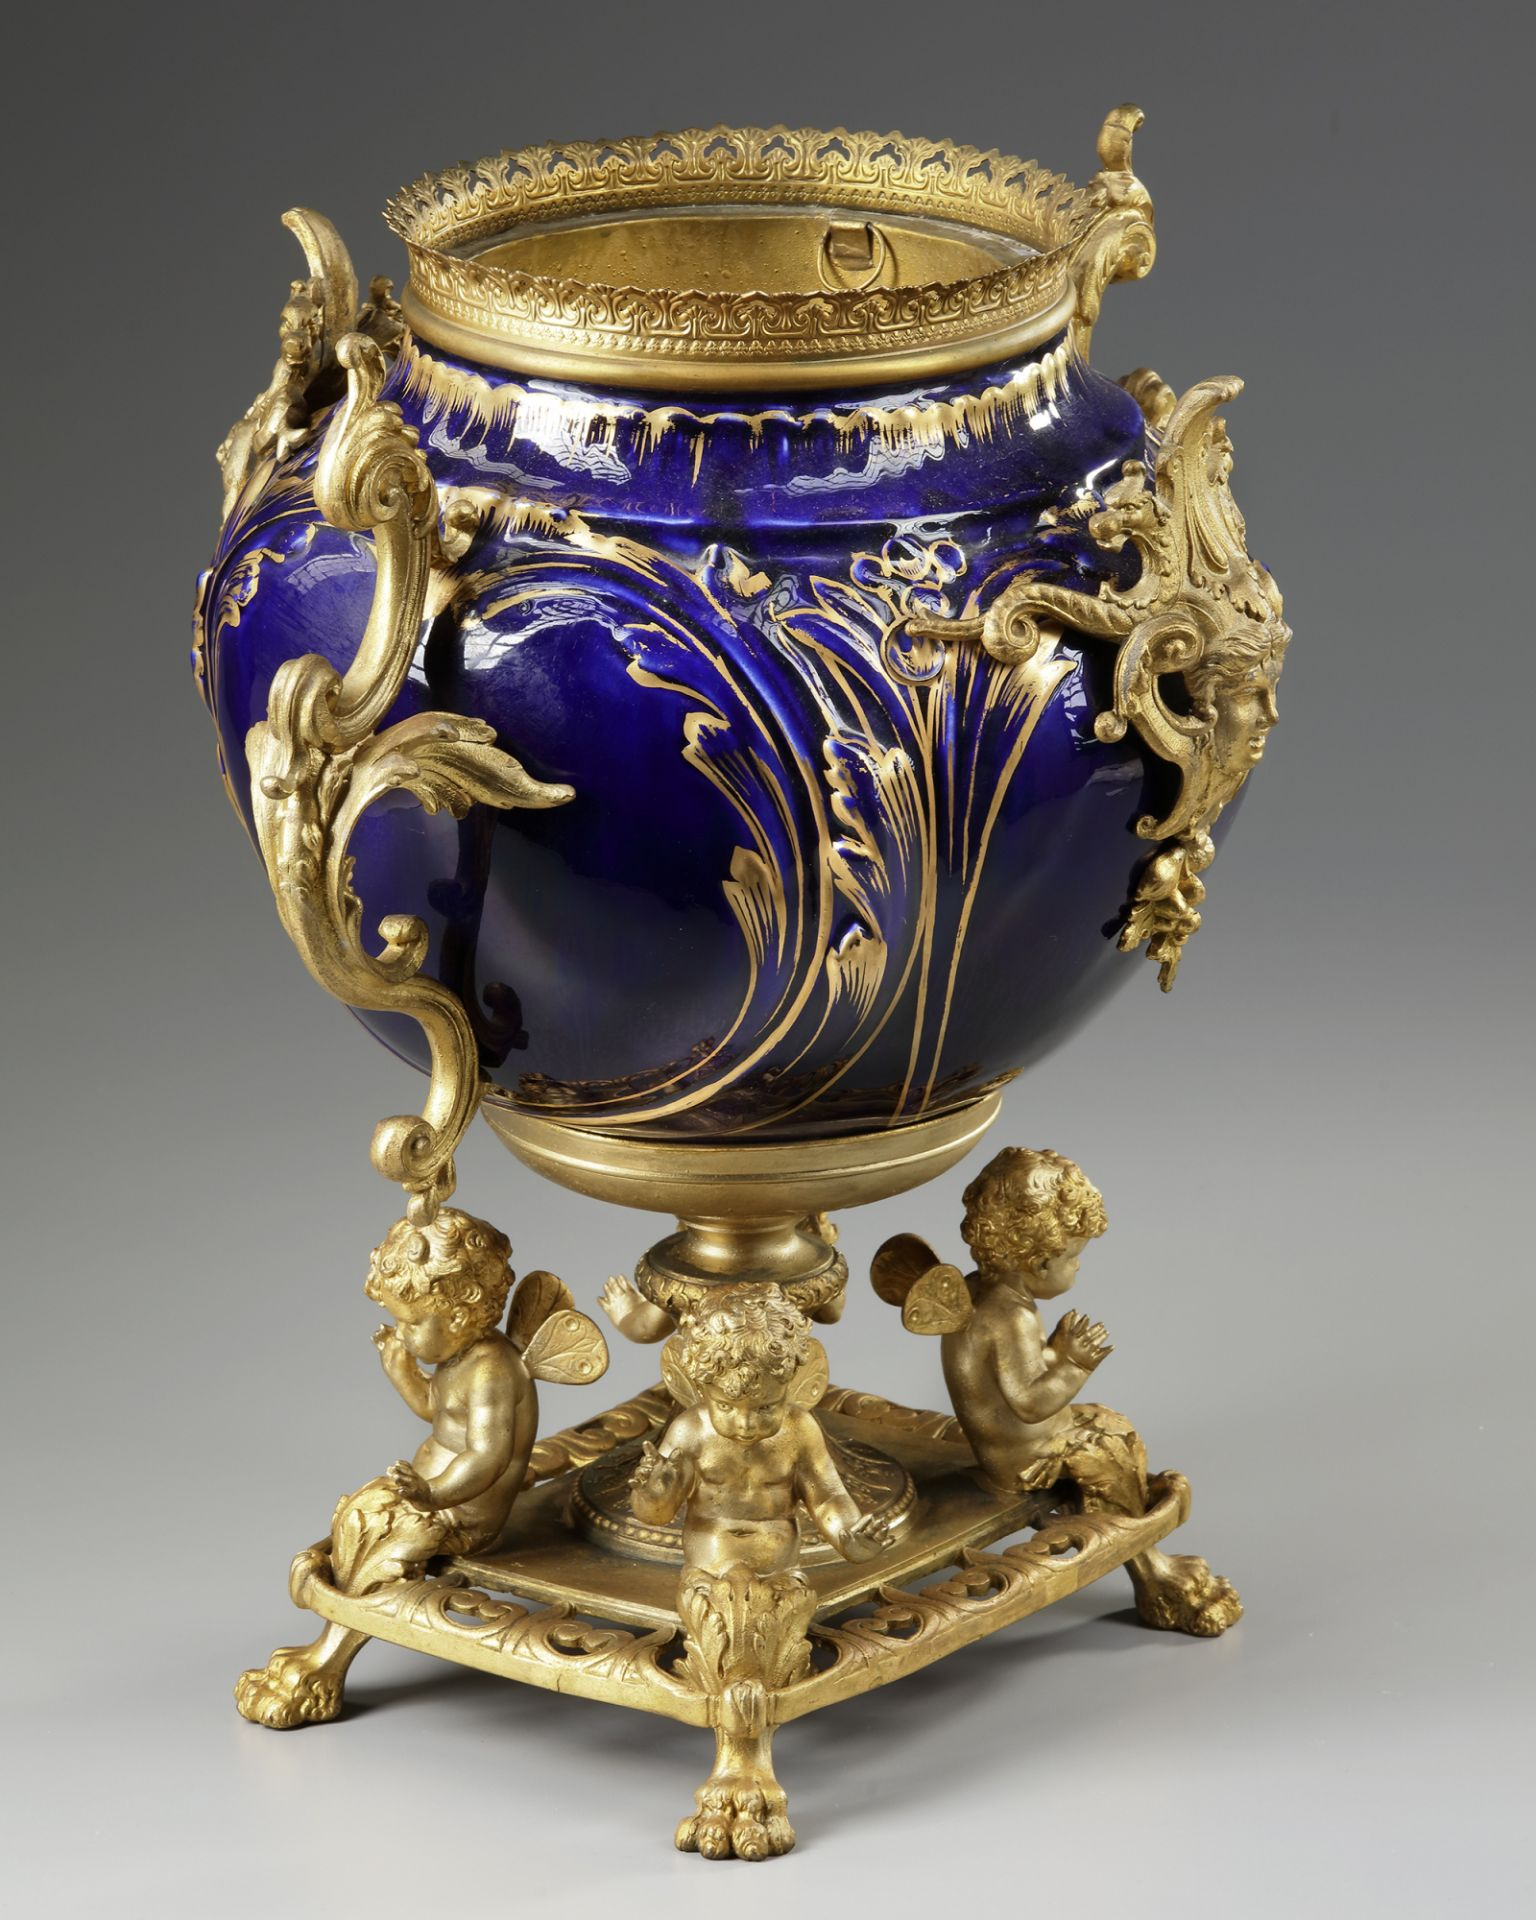 A FRENCH GILT SPELTER AND BLUE PORCELAIN FLOWER POT, LATE 19TH CENTURY - Image 3 of 3